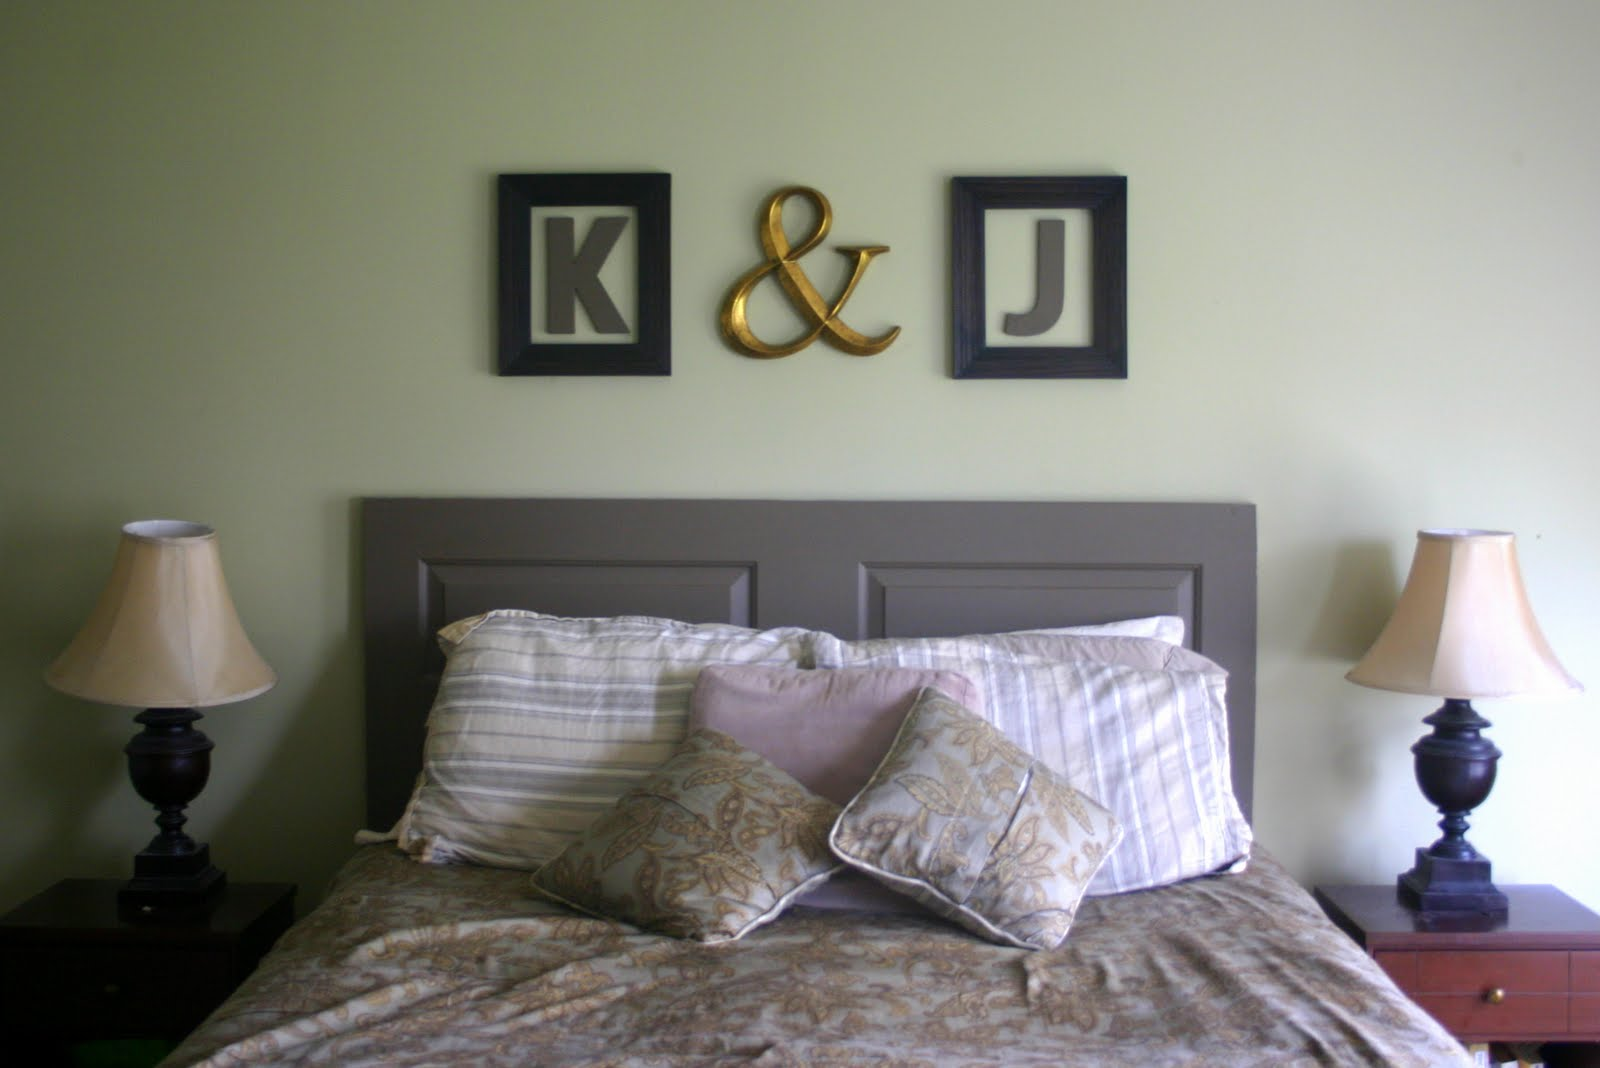 Diy Headboards East Coast Creative Blog